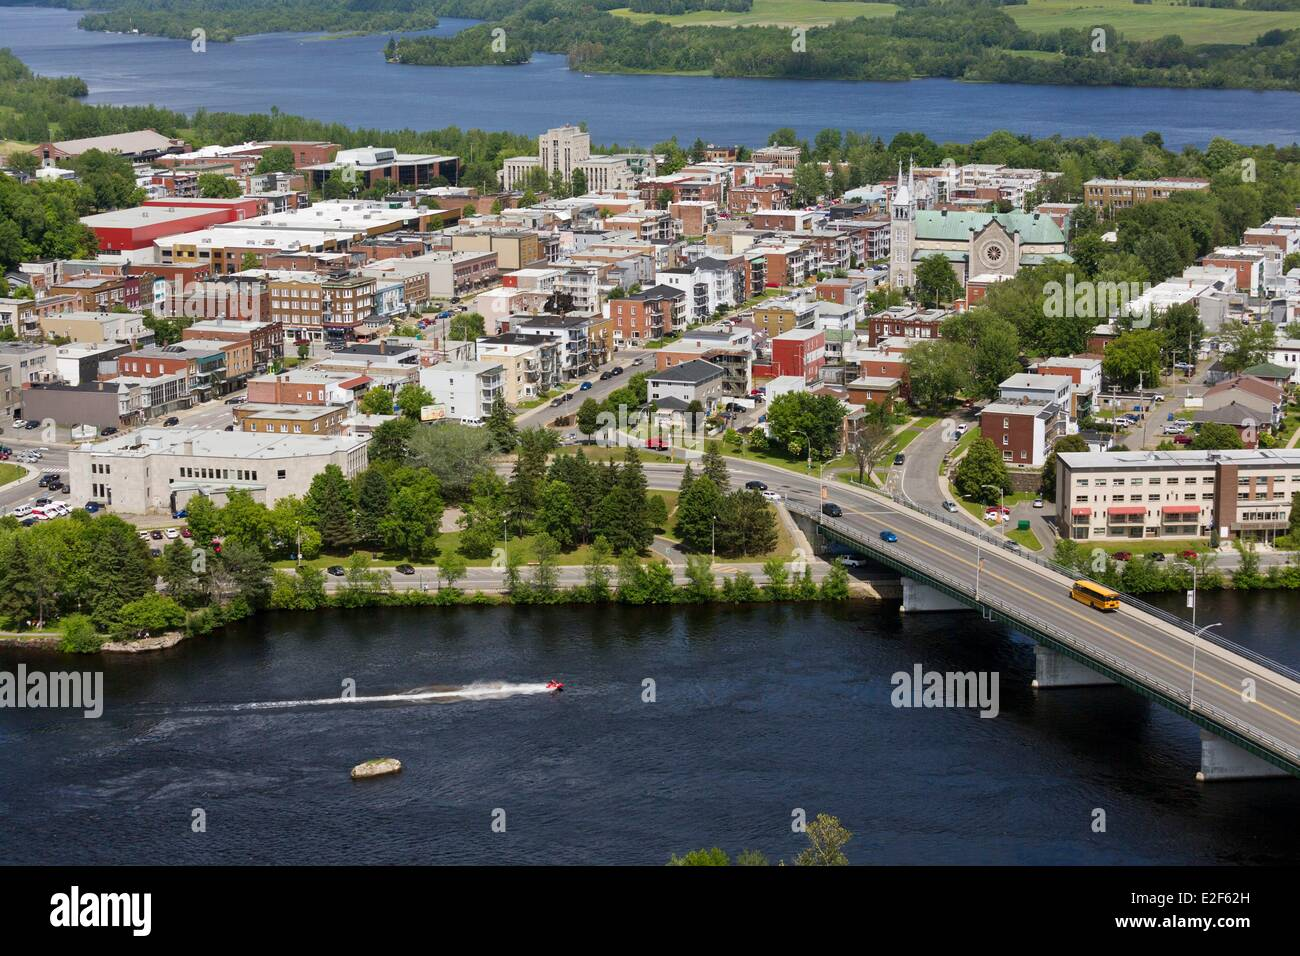 Canada, Quebec, Mauricie, Shawinigan city (aerial view) Stock Photo